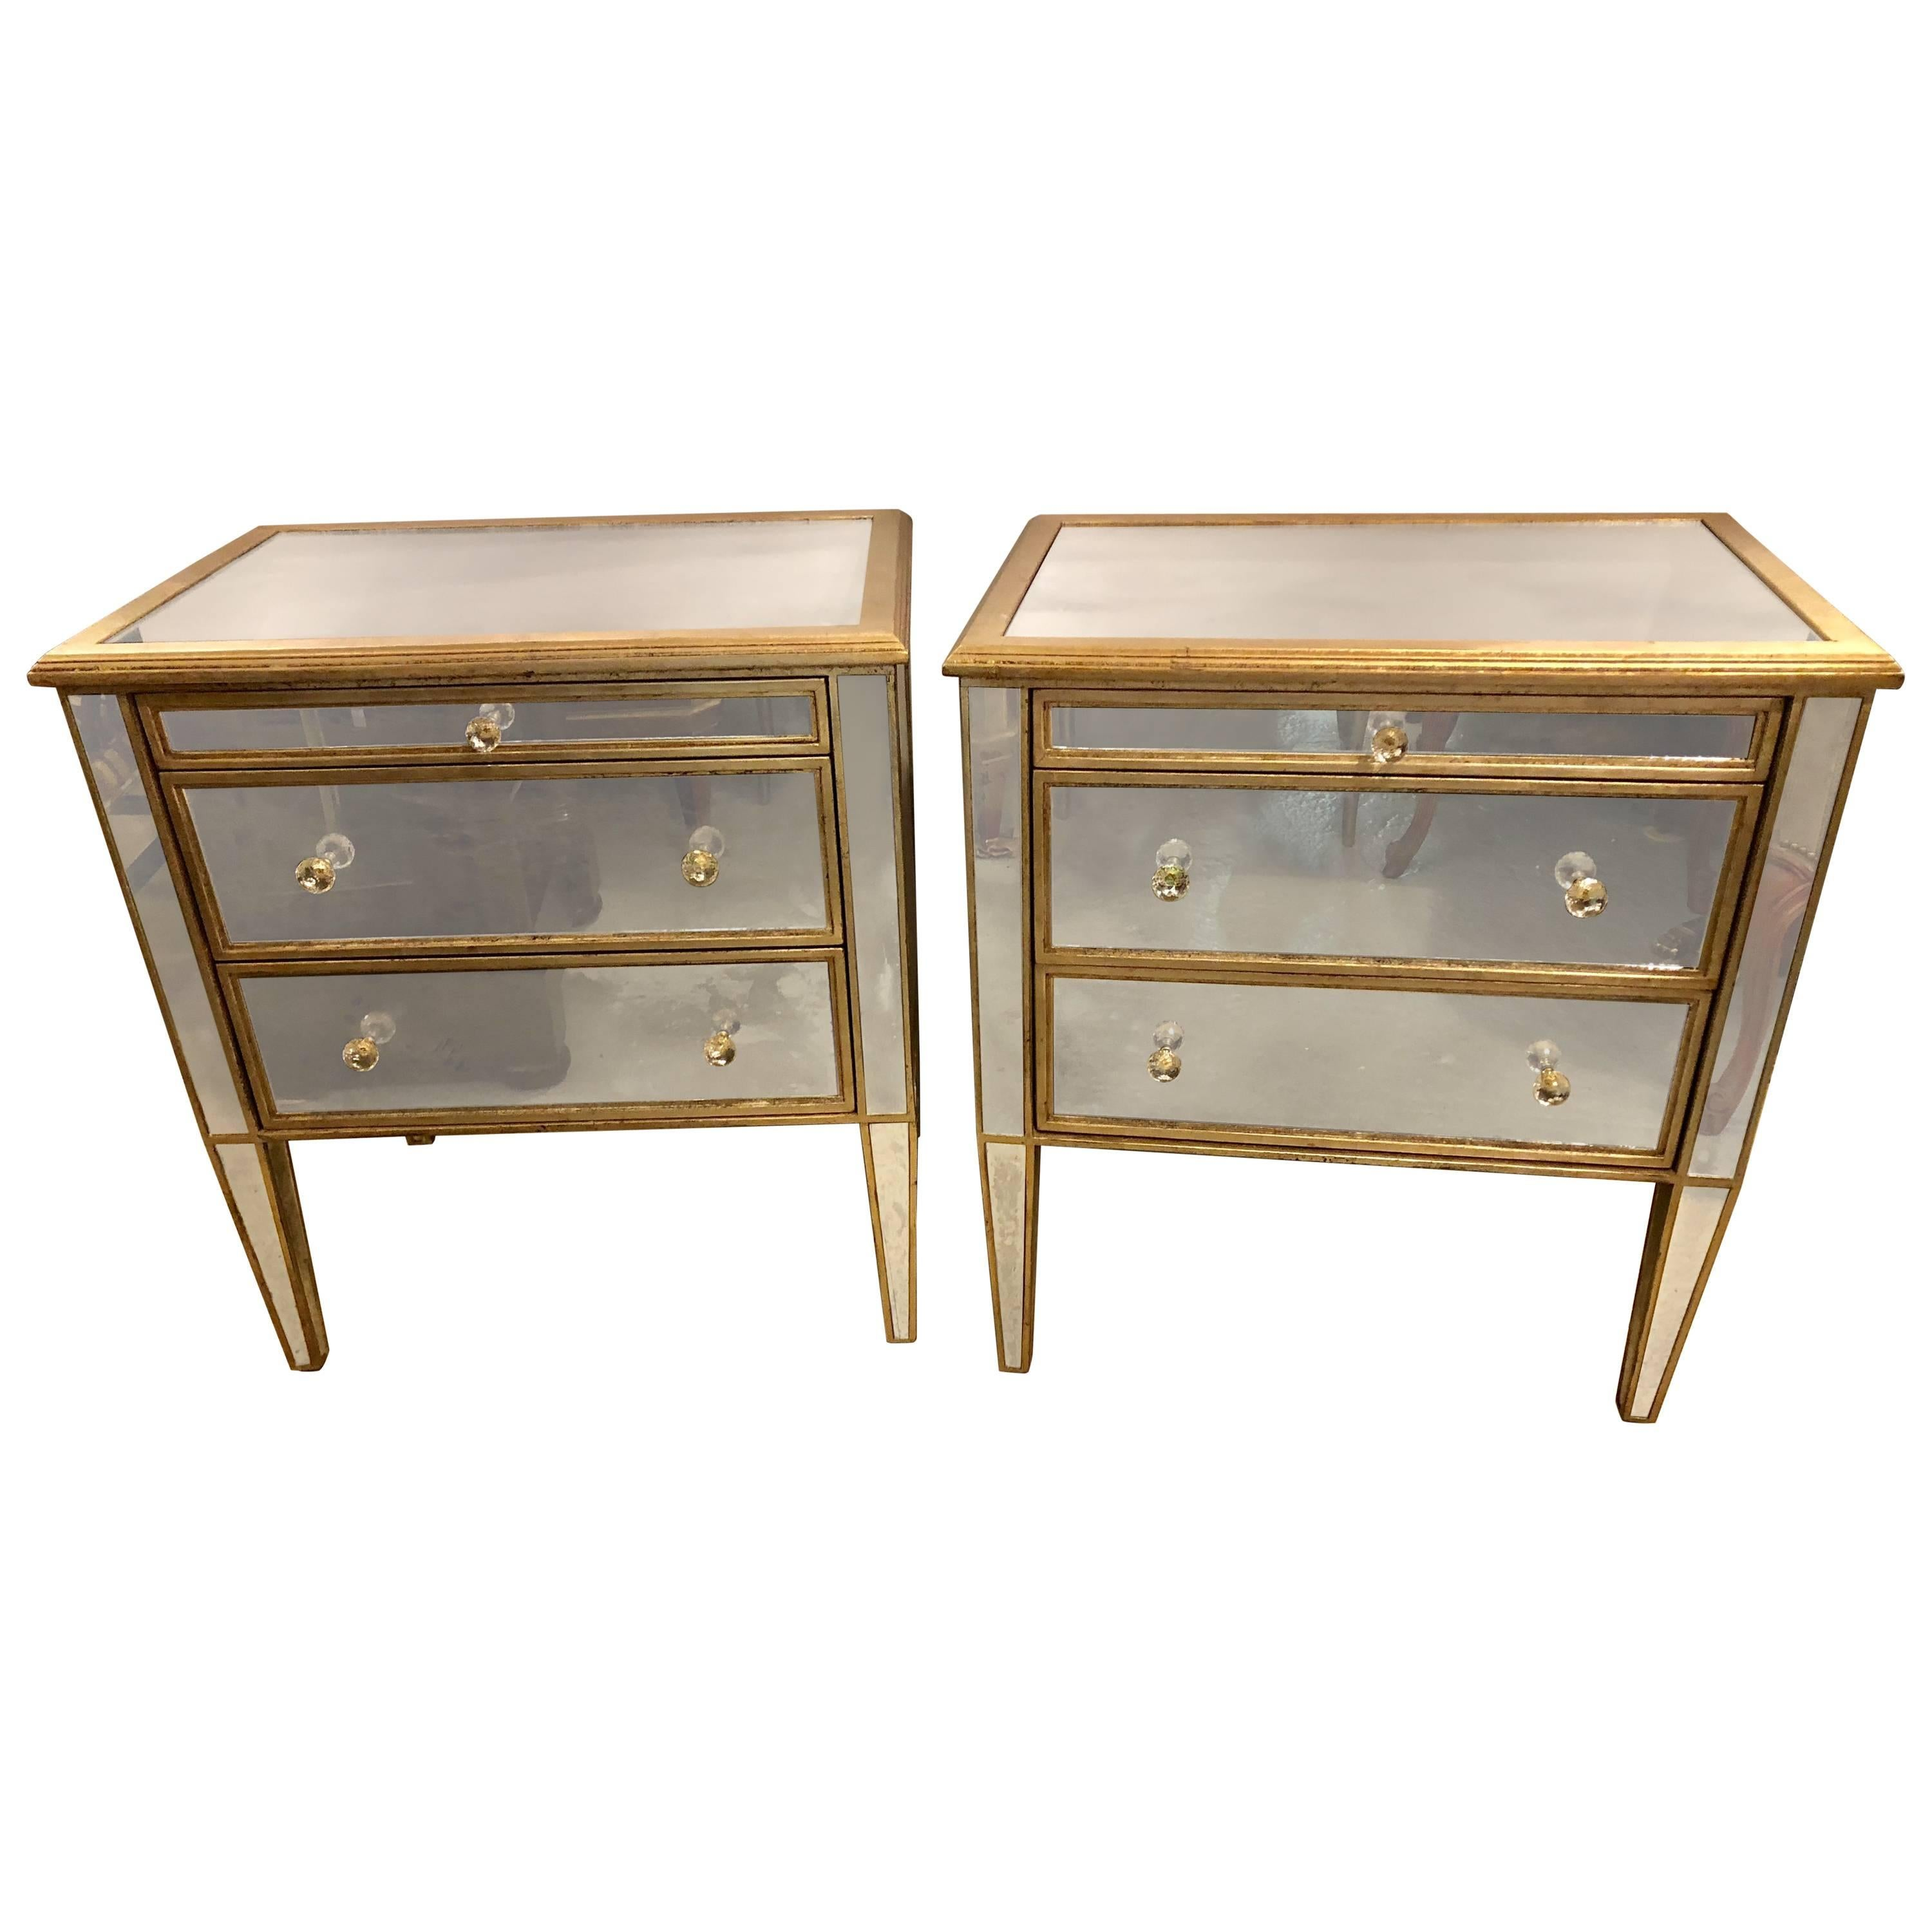 pair of large custom three drawer antique mirrored nightstands or commodes